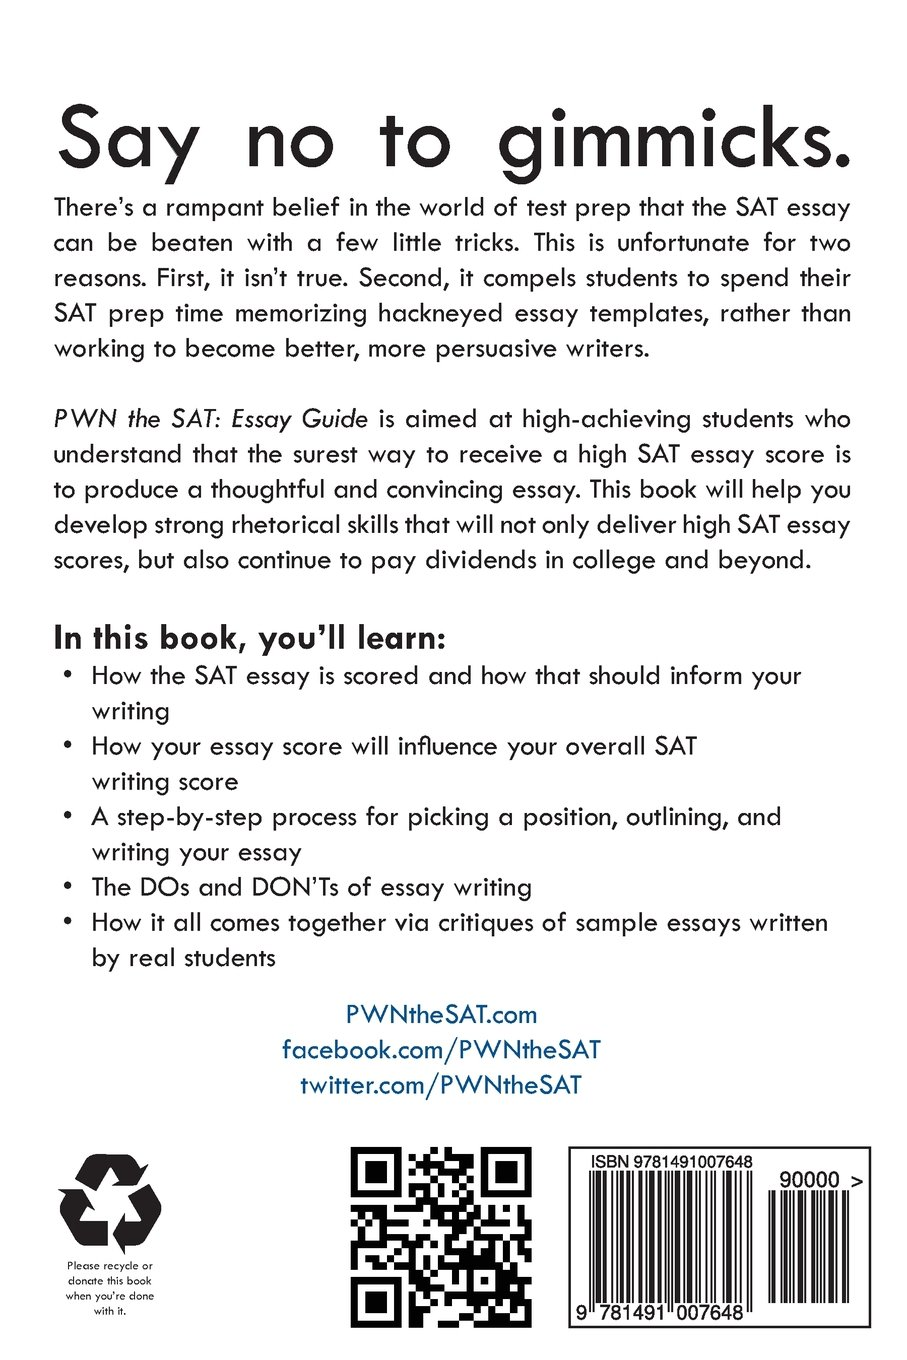 014 Essay Example 712bcqjf85sl What Is The Breathtaking Sat Score Out Of 24 Old 2017 Full